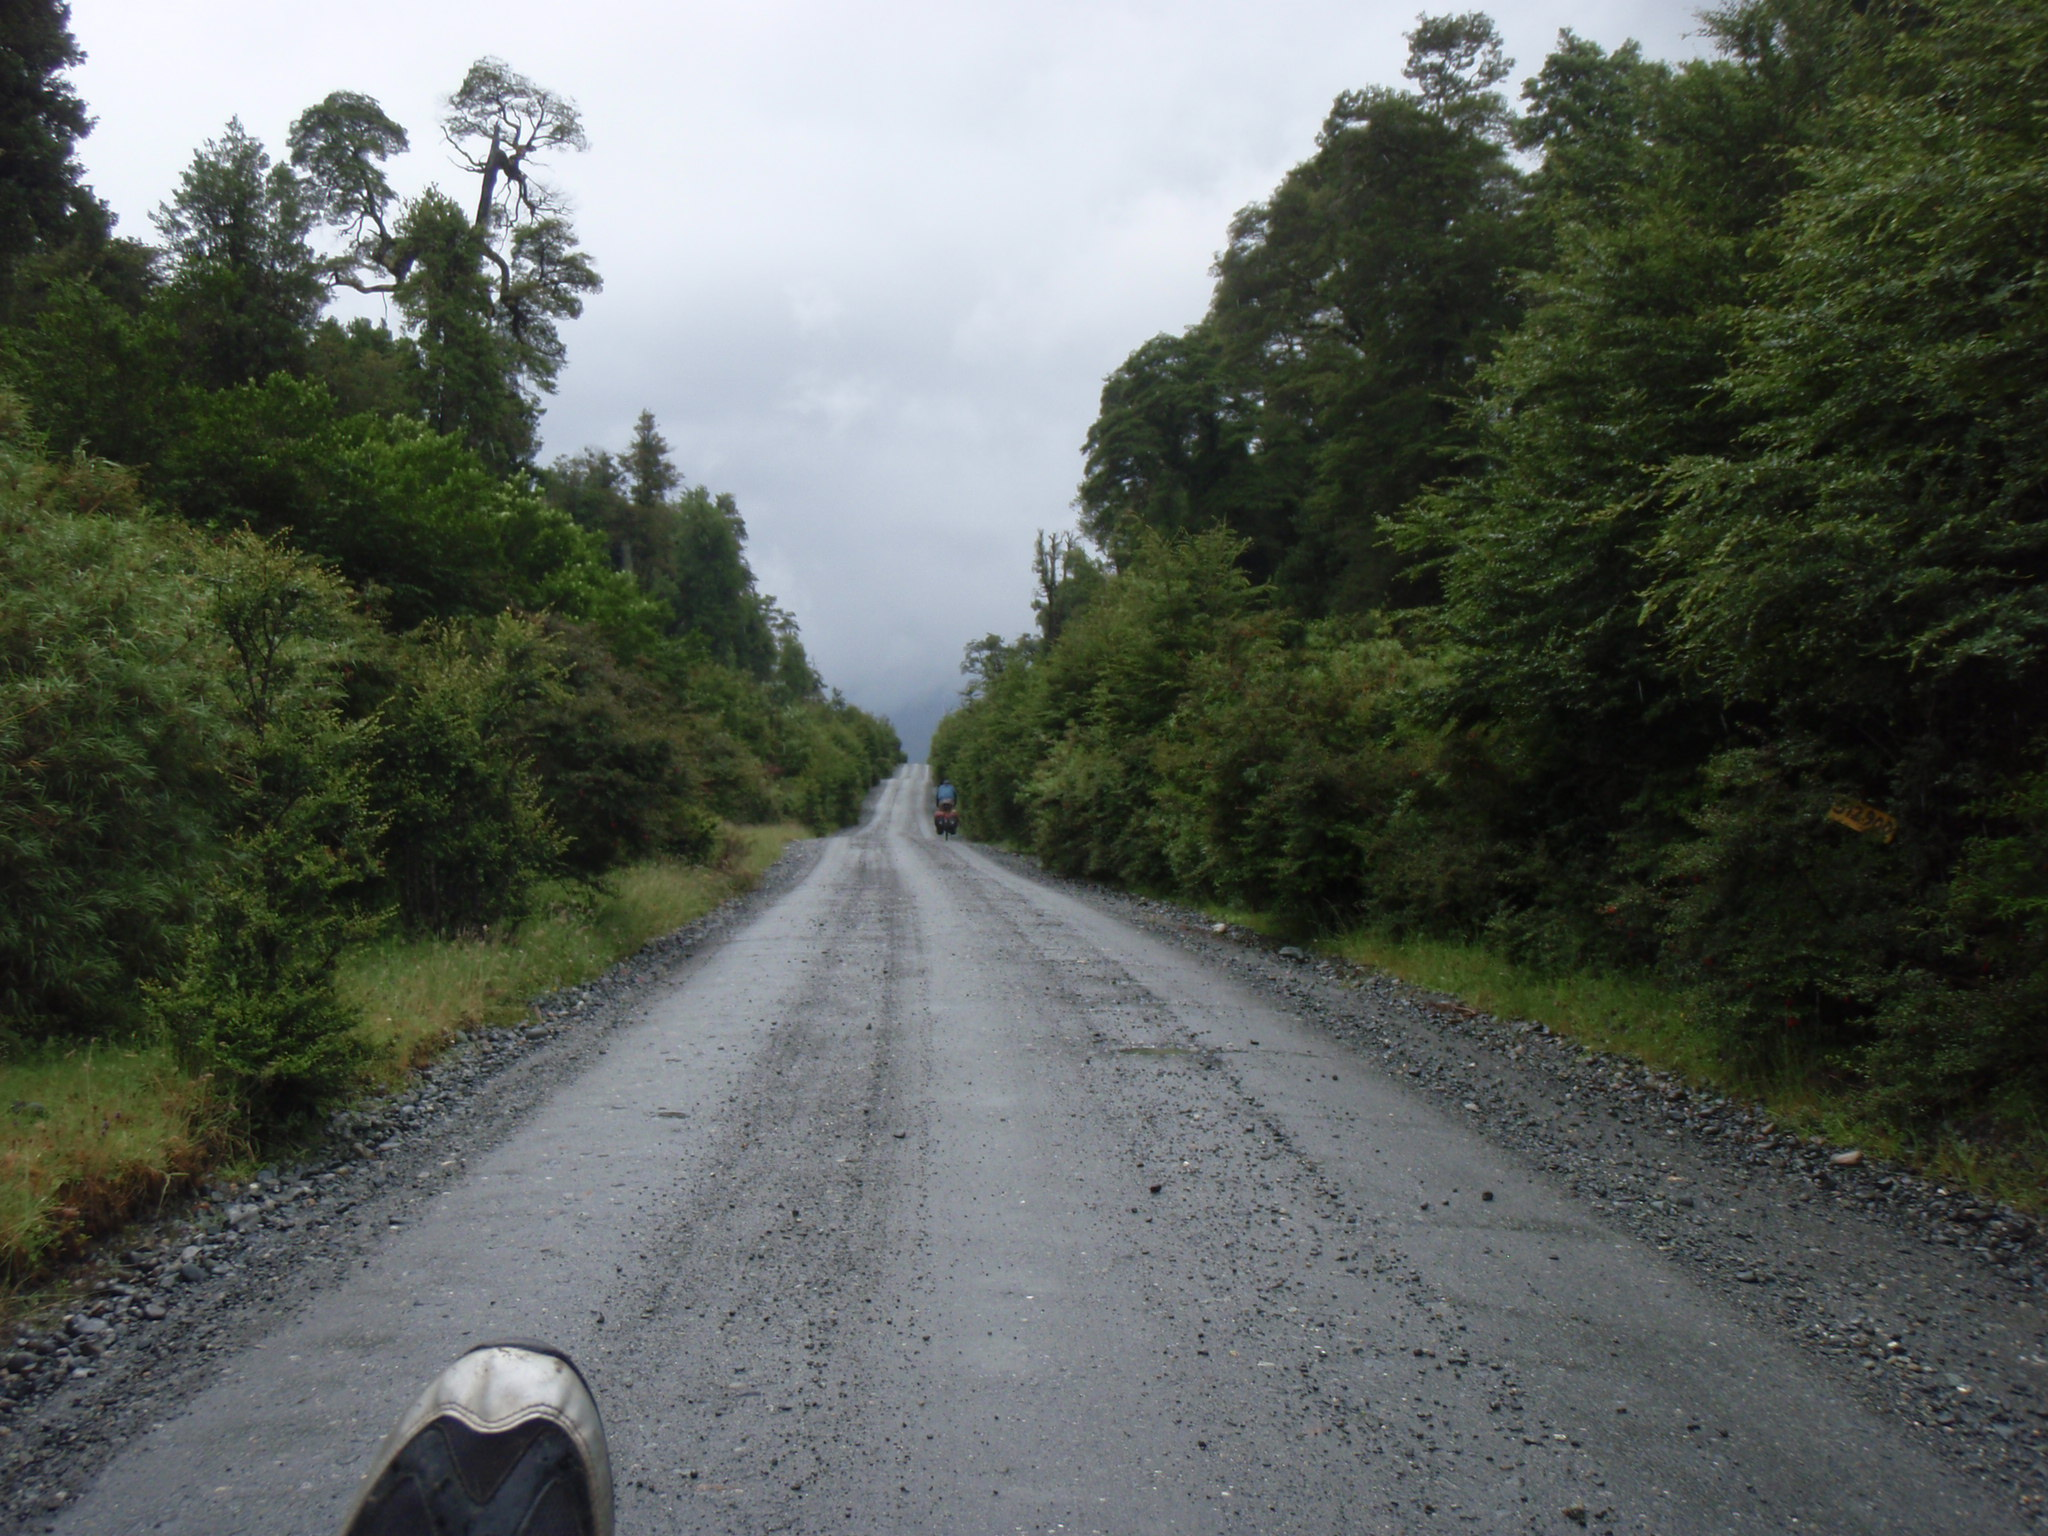 More rainy road through the rainforest ahead